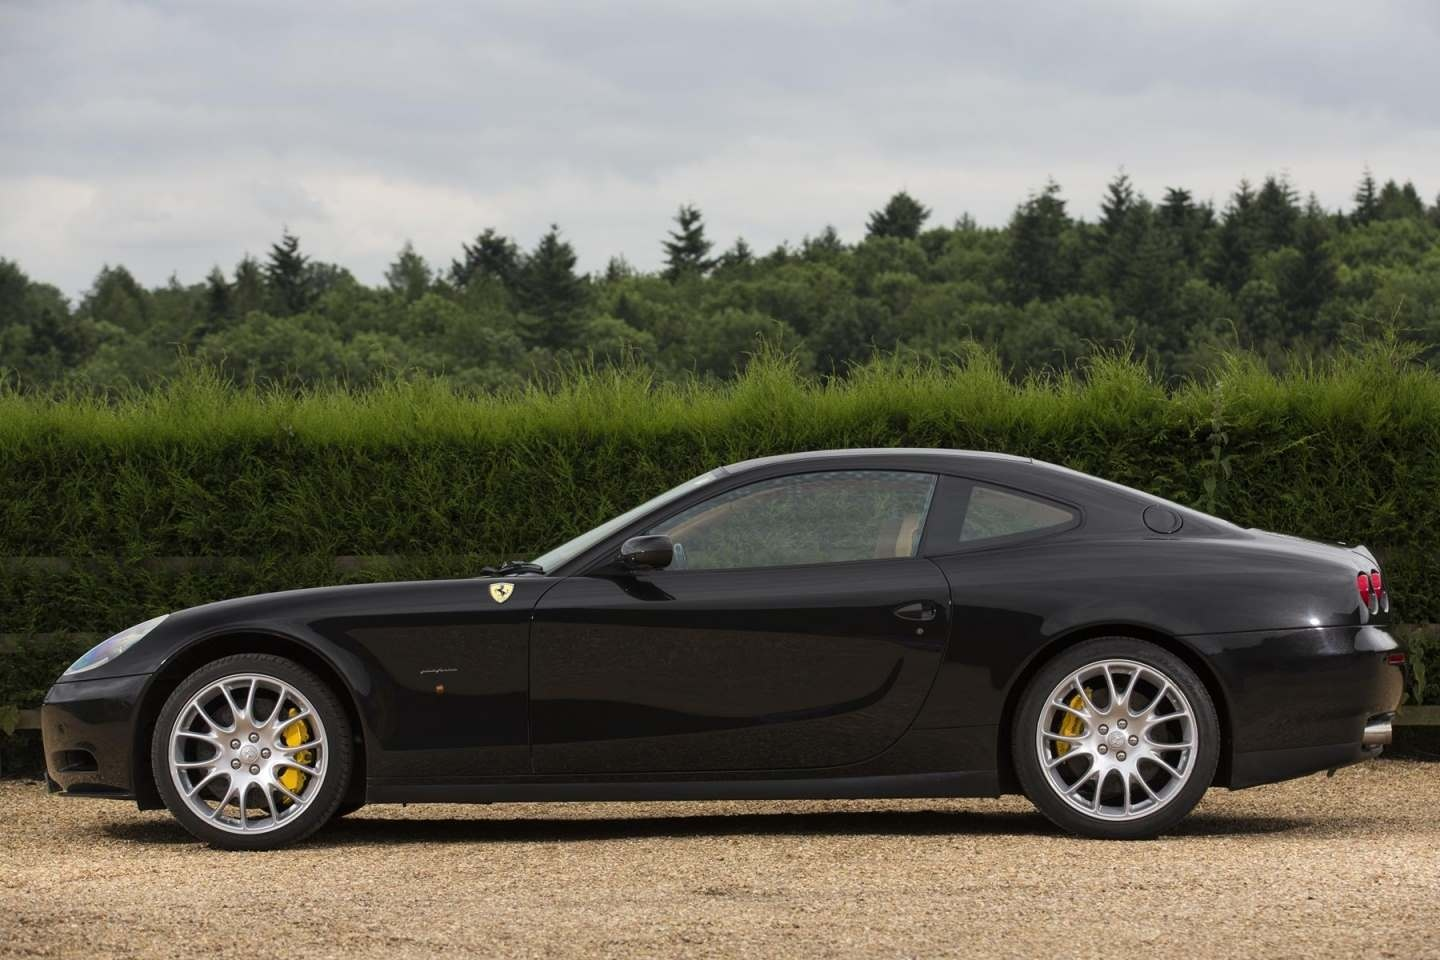 ferrari 612 scaglietti for sale vehicle sales dk. Black Bedroom Furniture Sets. Home Design Ideas